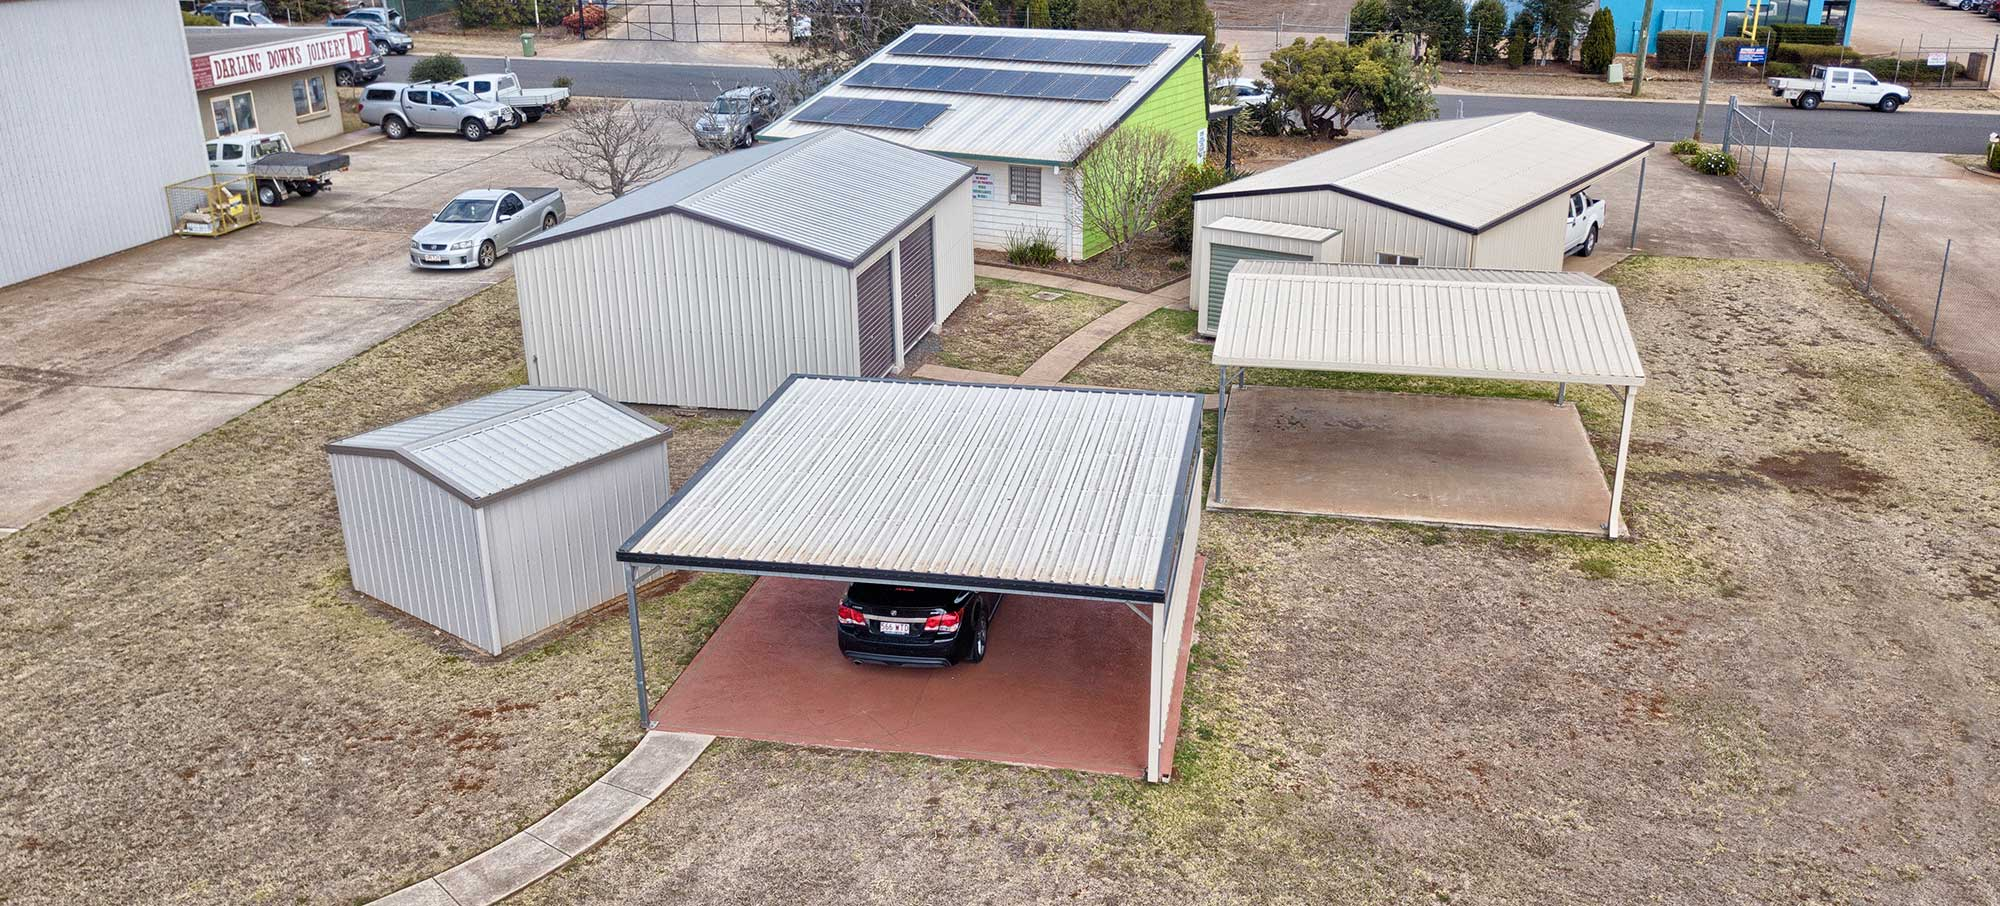 Titan Sheds Aerial Photography Toowoomba Display Centre